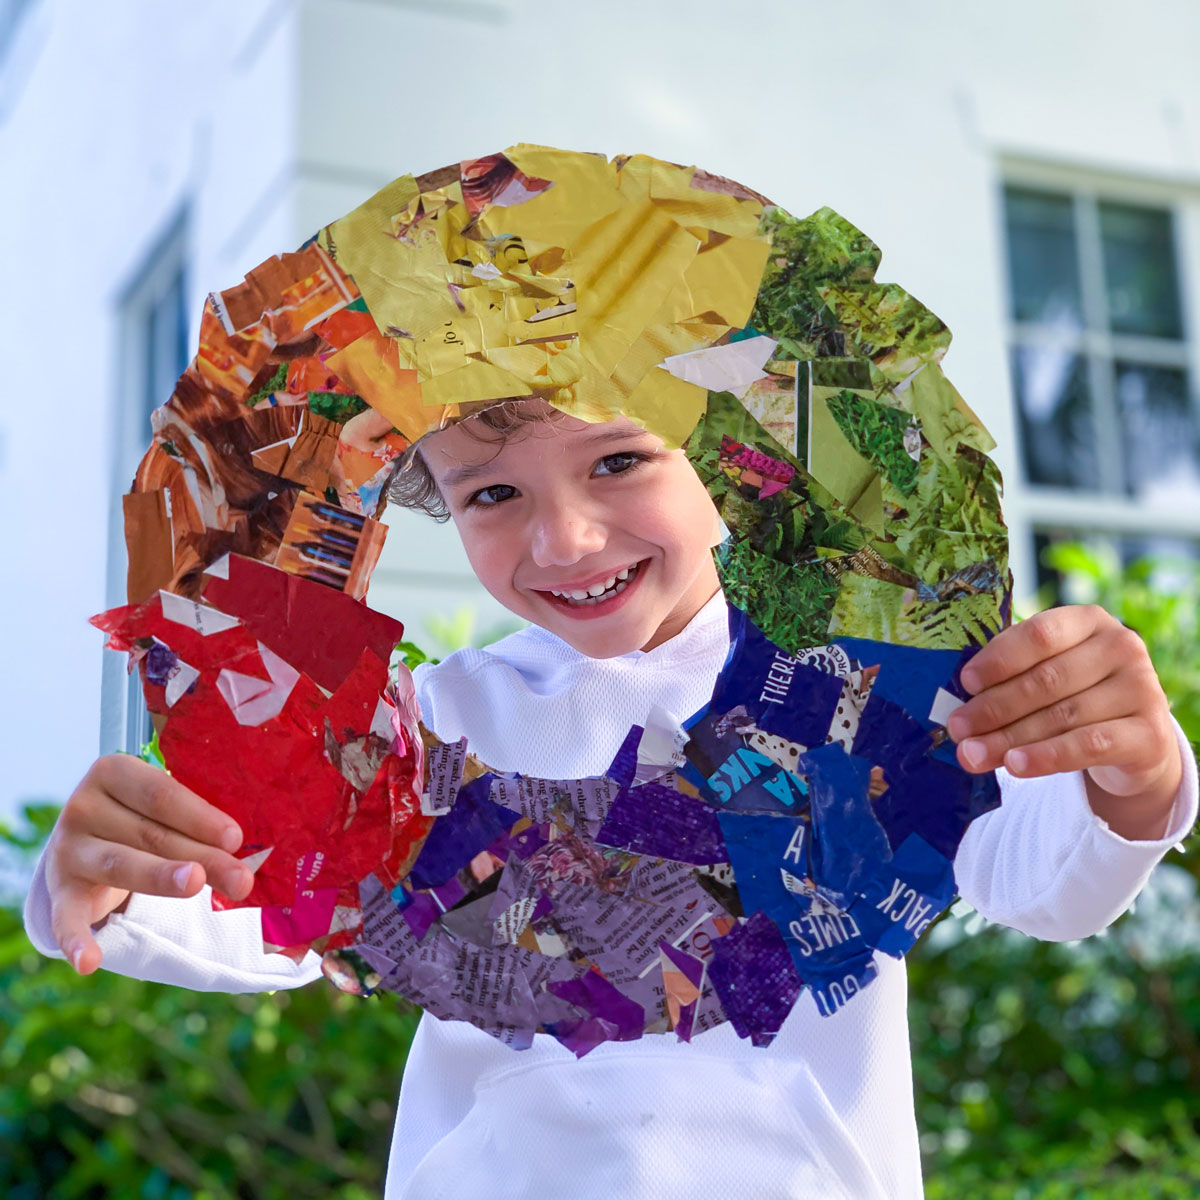 Wreath Craft – Genius Re-Use of Old, Colorful Magazines